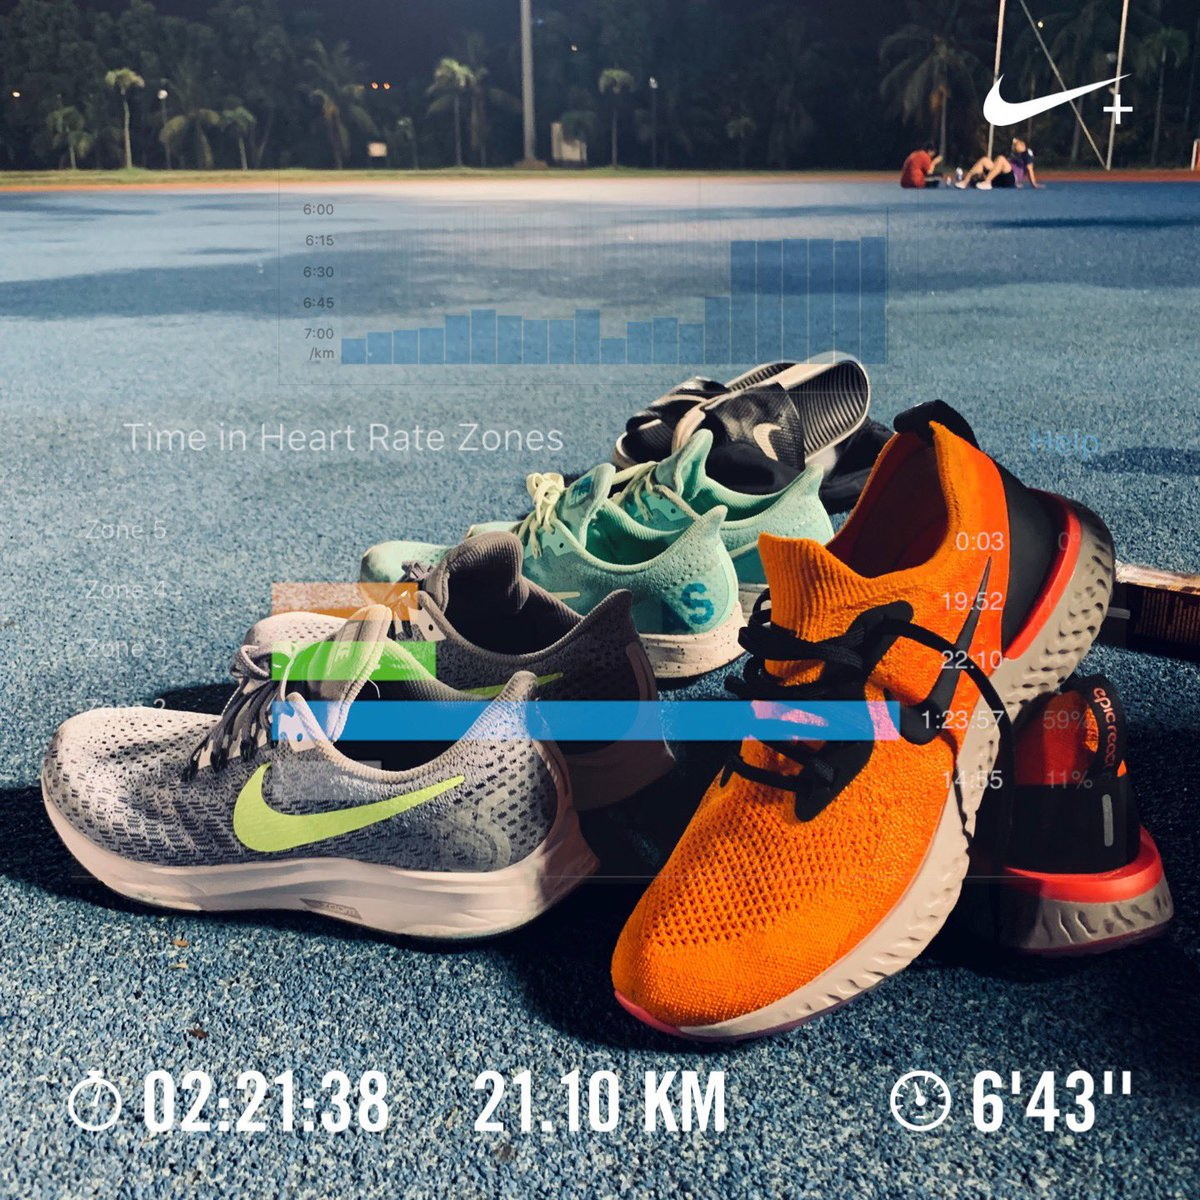 Friday Night Oval Grinders. With @mohamadarsi  - Long Progressive Aerobic Half - 3000 x 2 @ AT (~6:15)  #SwooshTeam #NikeRunning  #OvalOffice #RNMDHND19<br>http://pic.twitter.com/oBD1fyzD3O